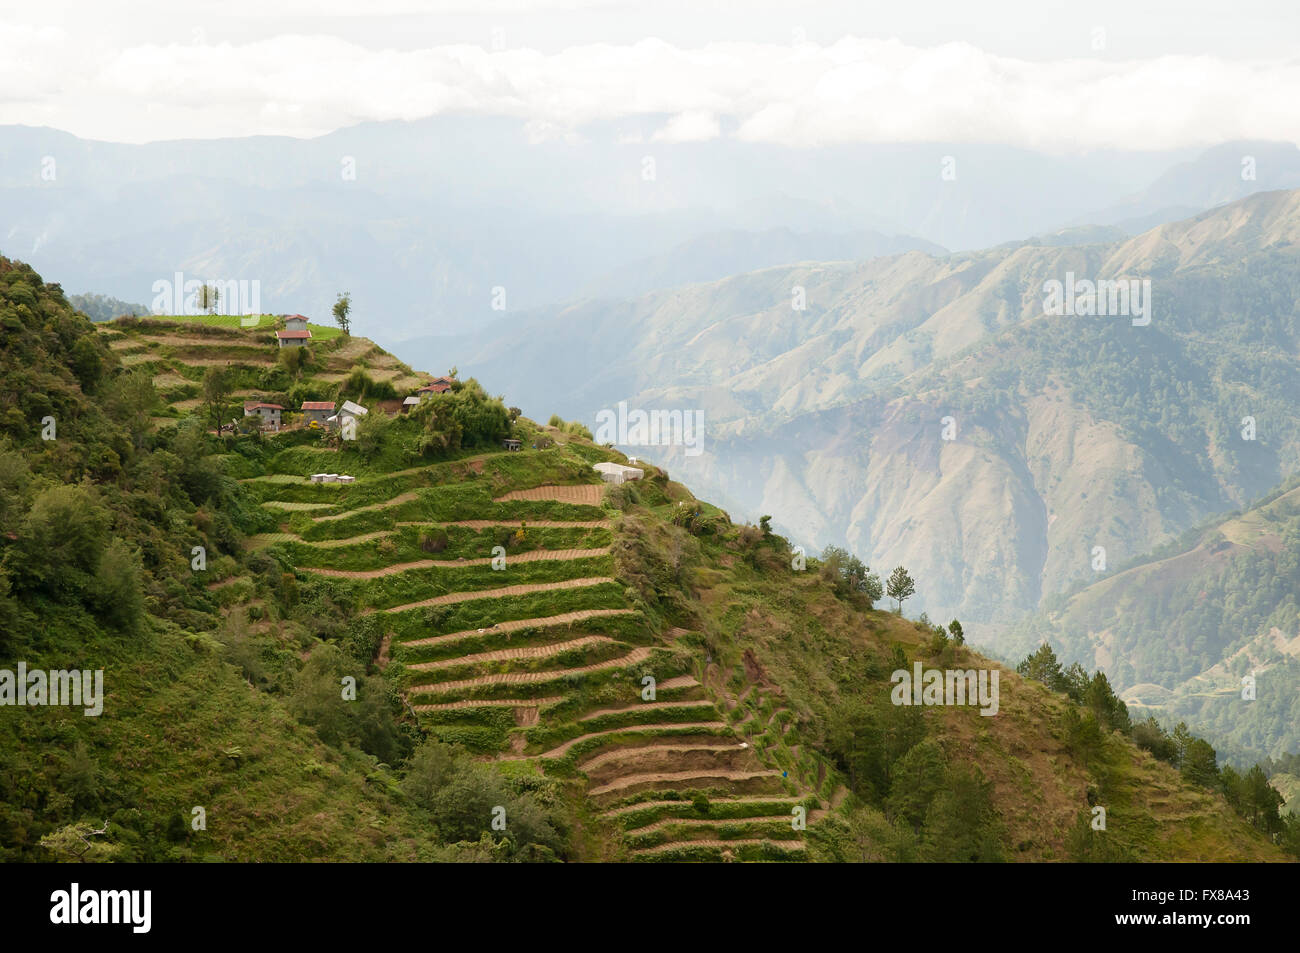 Terrace Fields - Luzon - Philippines - Stock Image